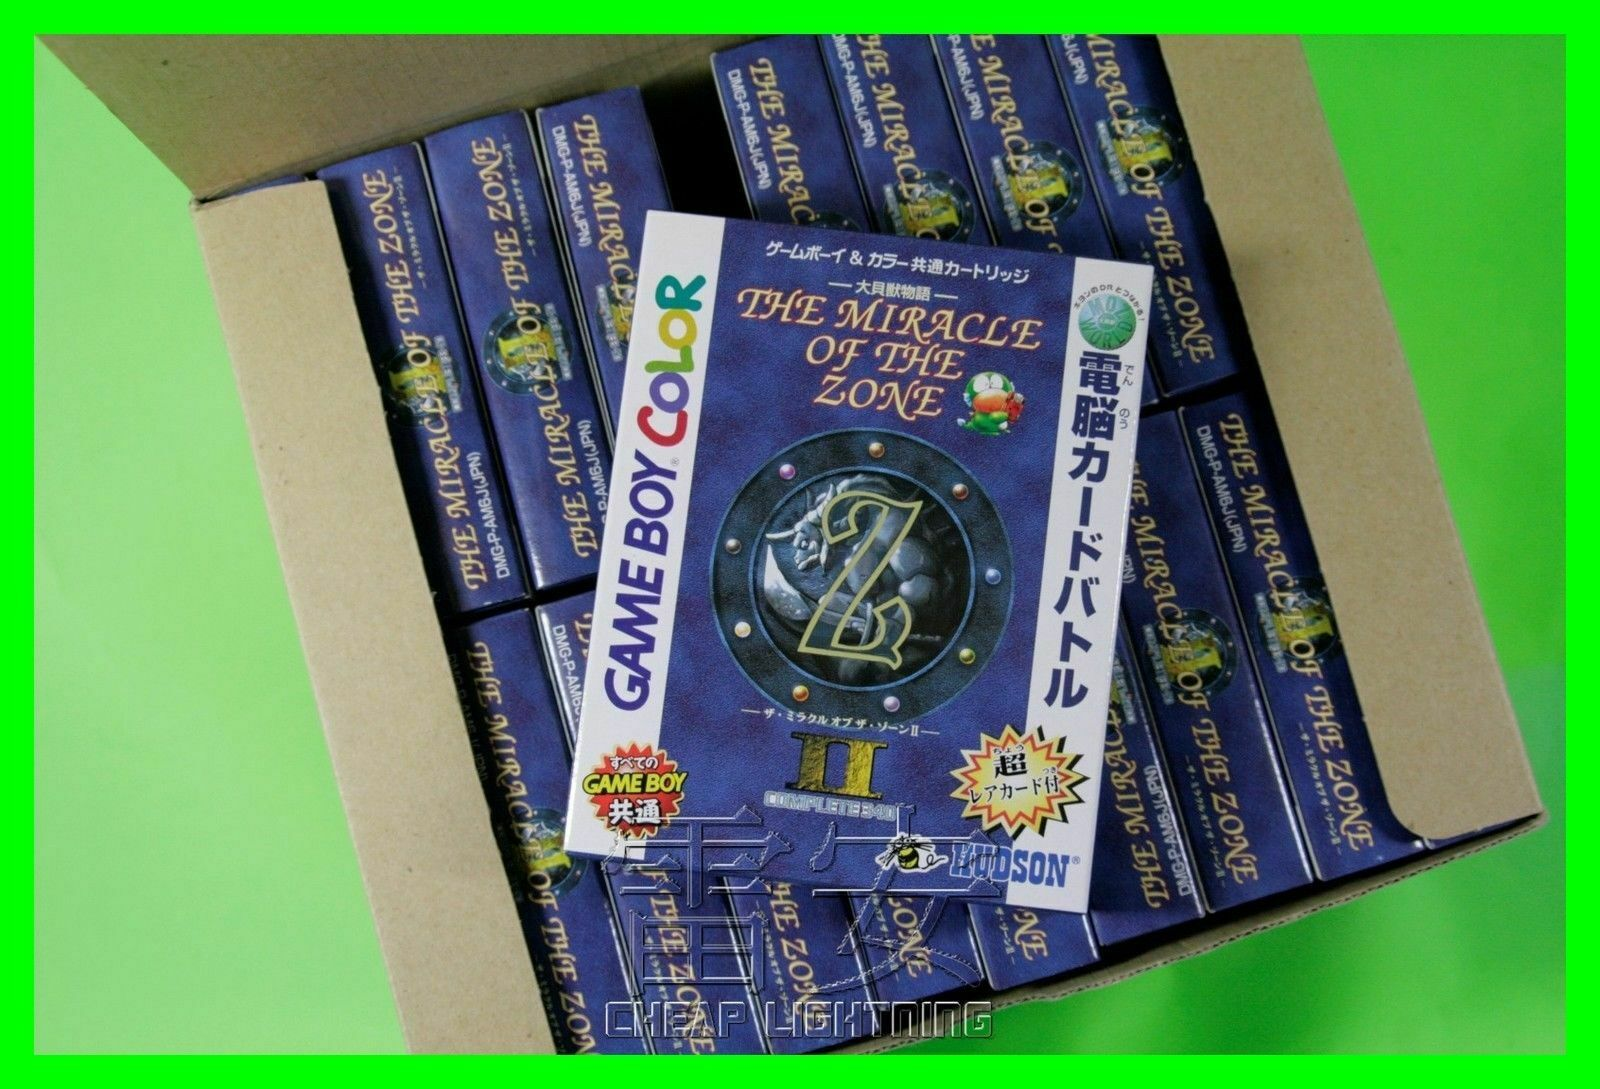 Nintendo Gameboy Color The Miracle Of The Zone Ii Jap Dans L